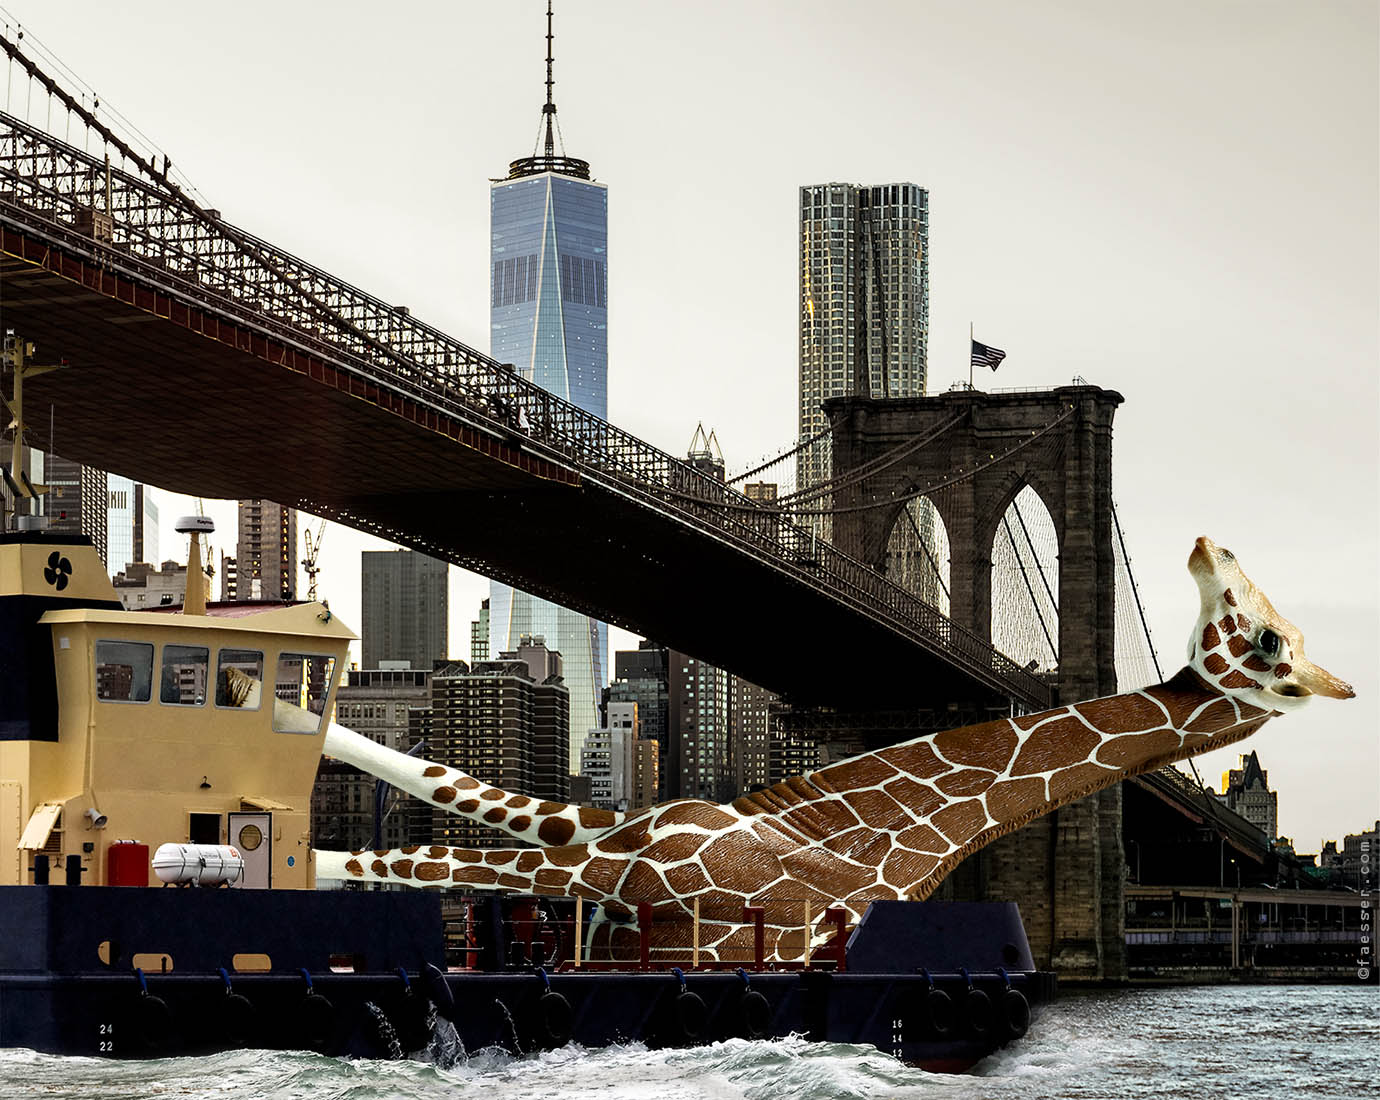 Public giraffe sculpture shipping on the East River in NYC; artist Roland Faesser, sculptor and painter 2018